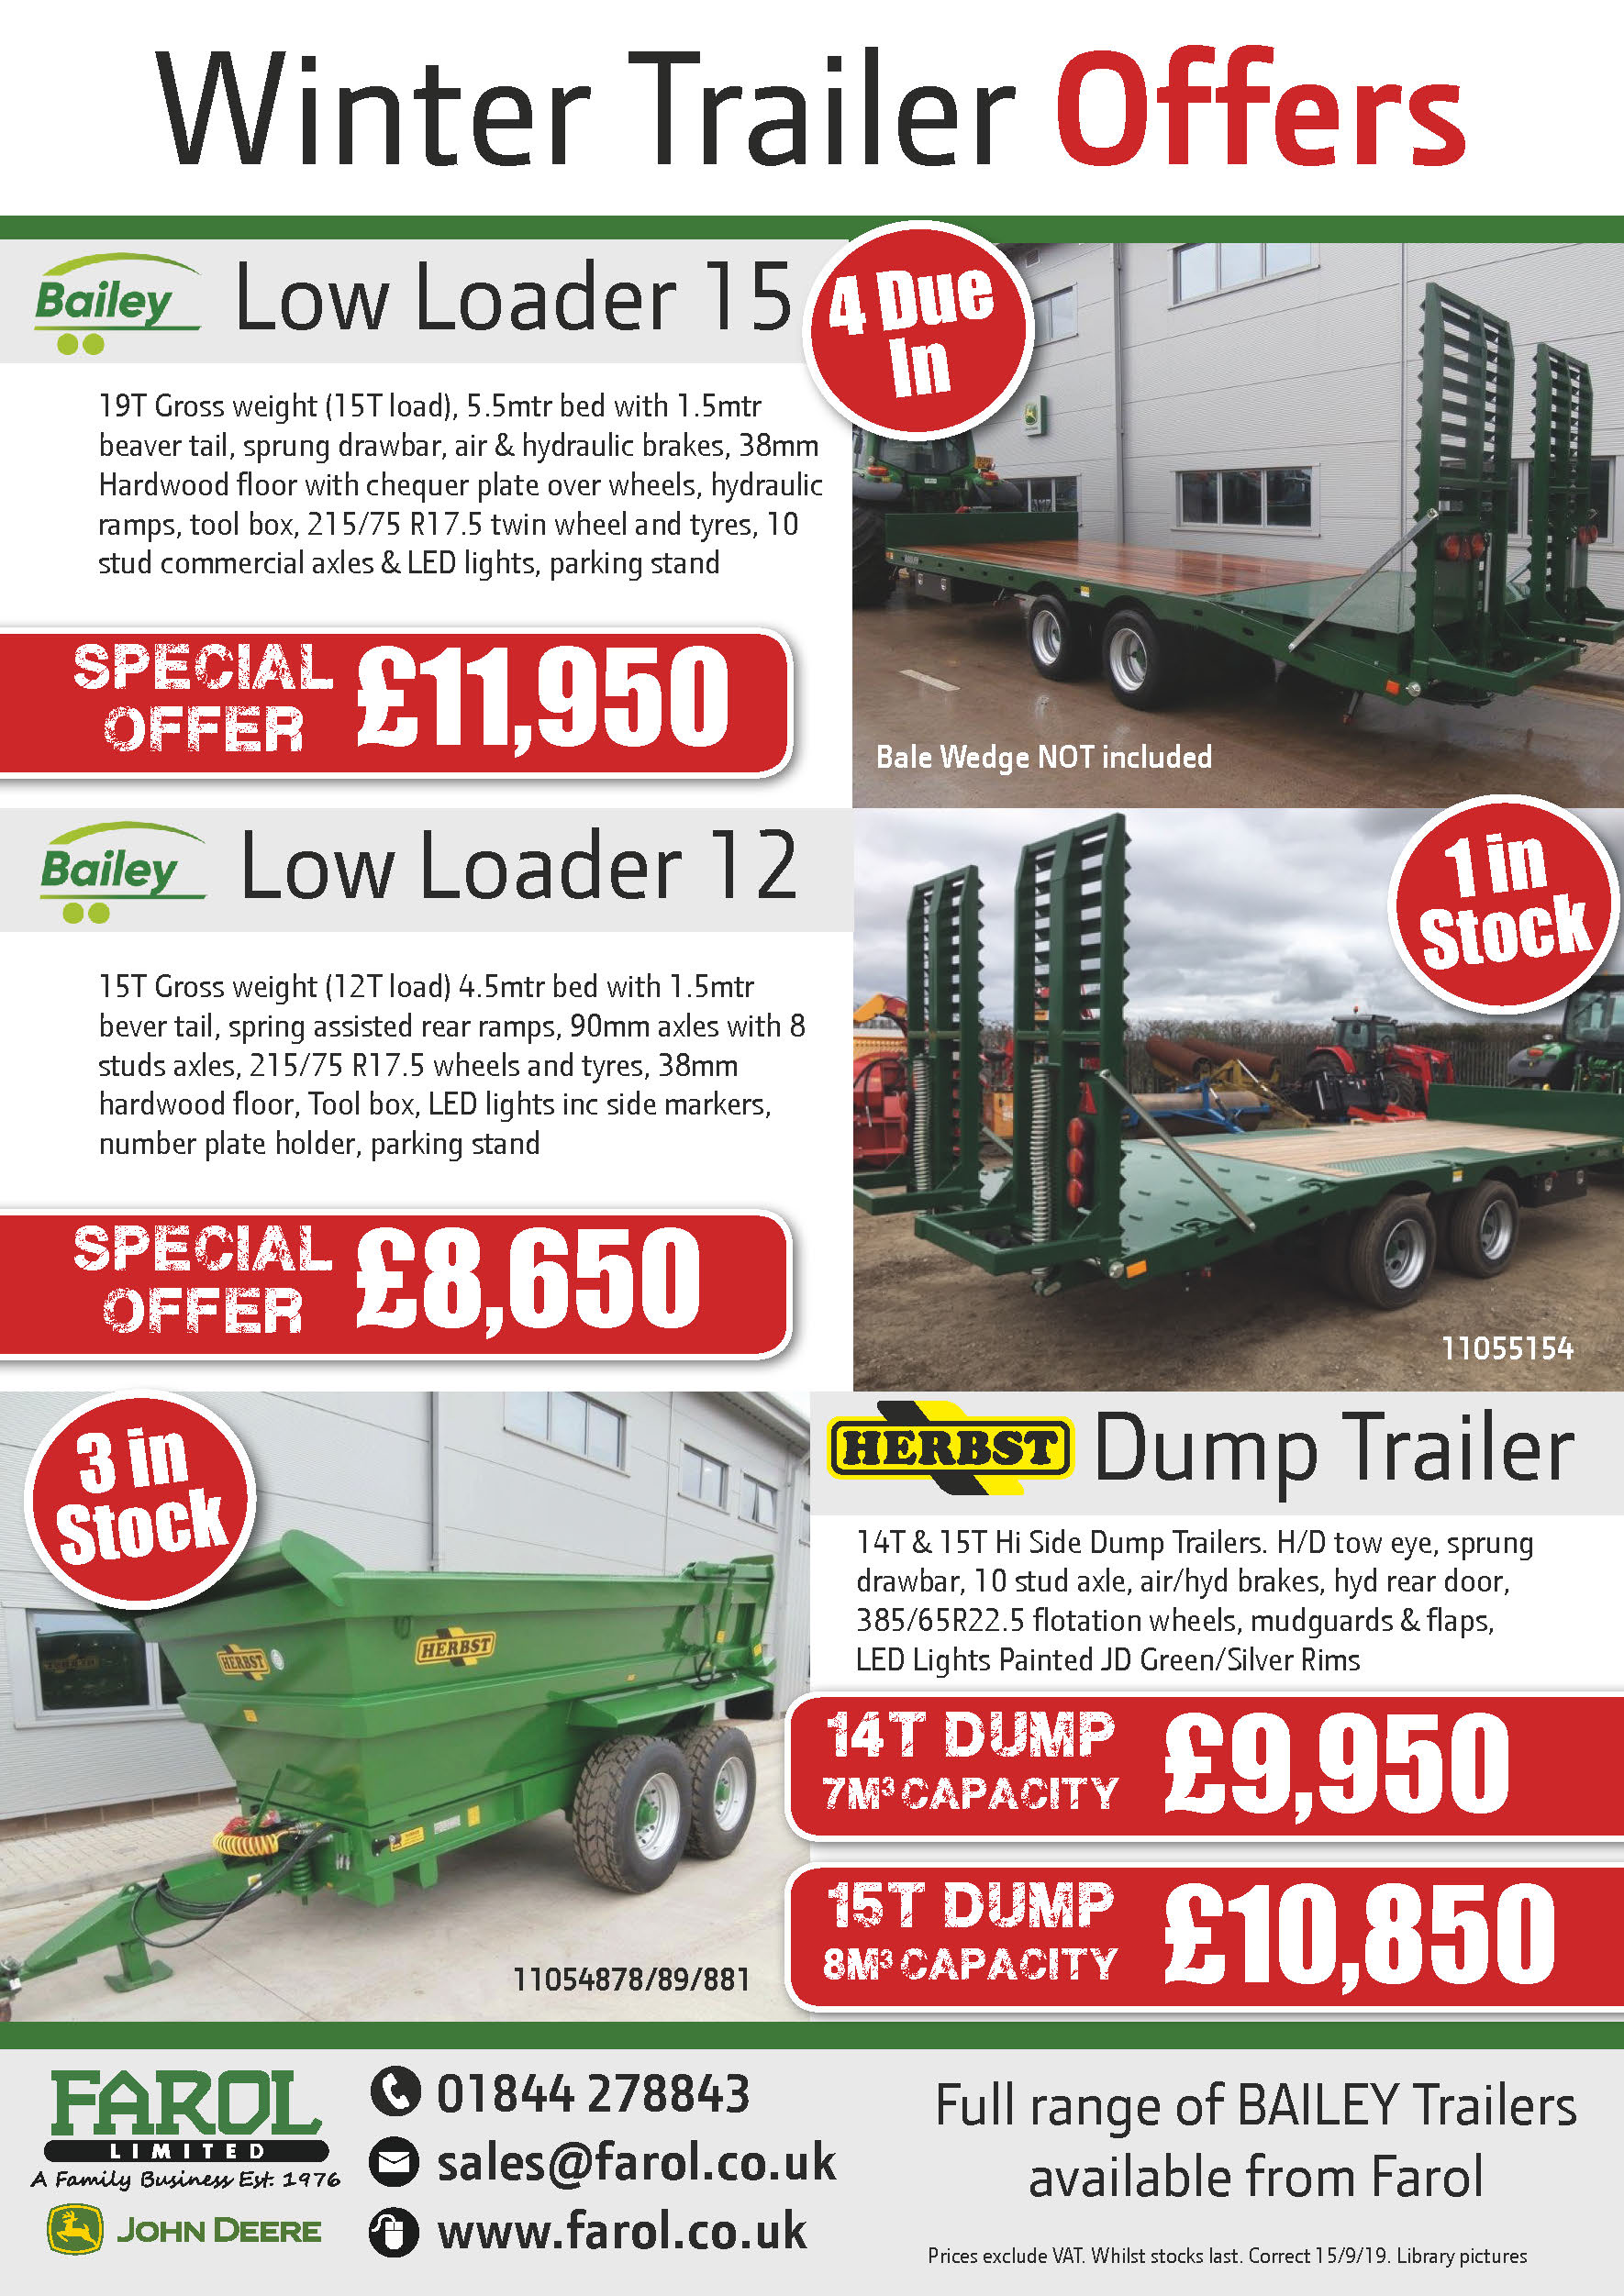 Bailey Low Loader/Dump Trailer Offers